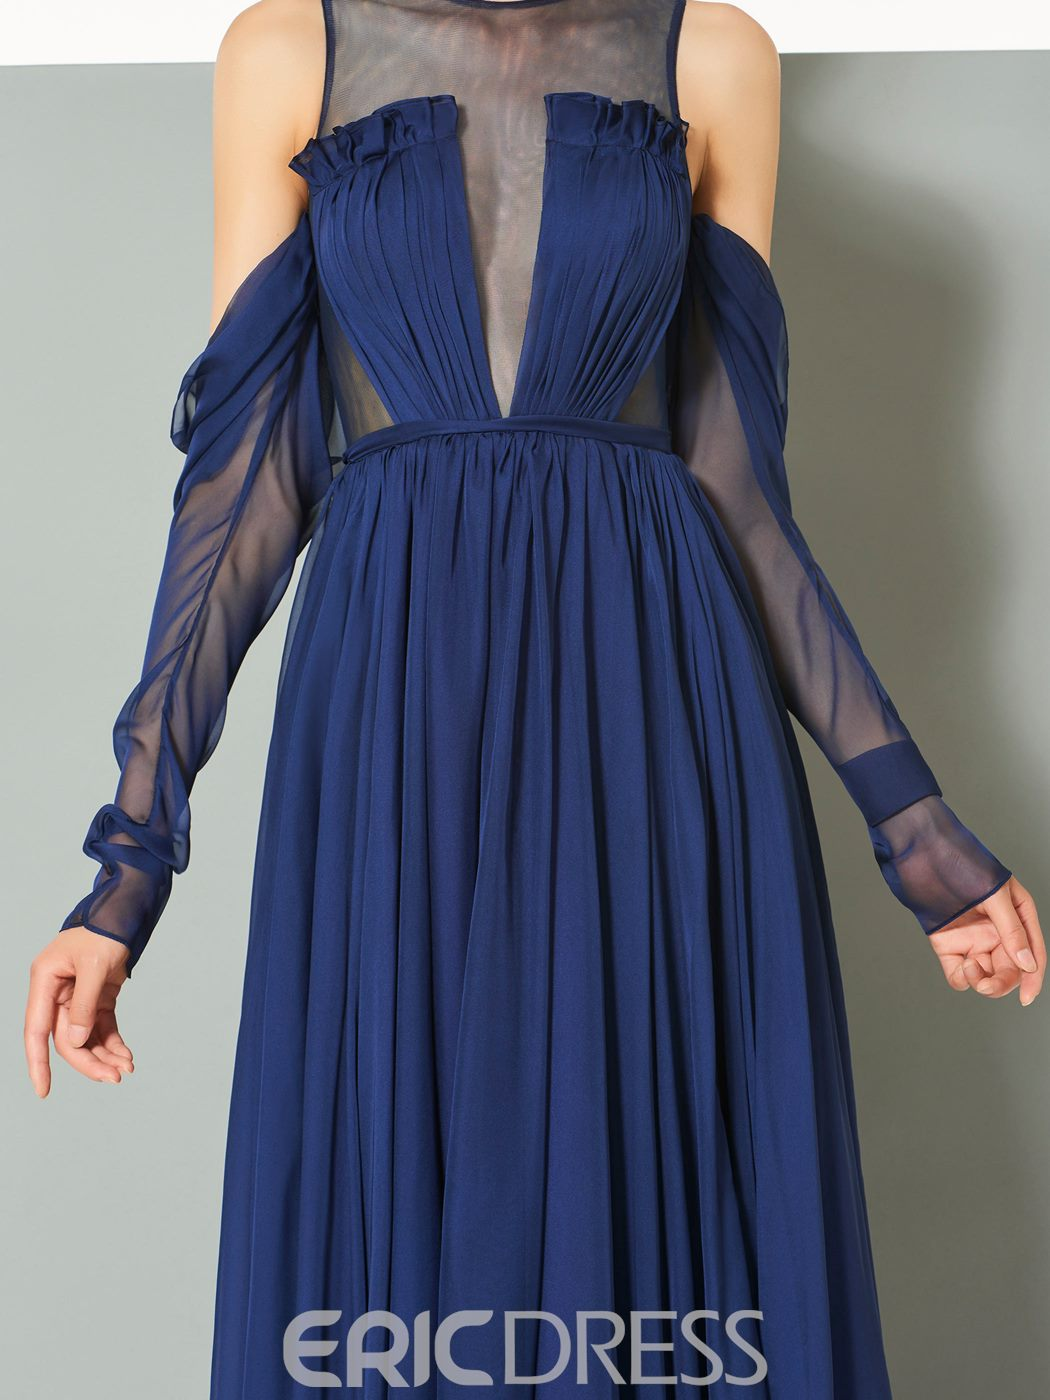 Ericdress A Line Long Sleeve Off The Shoulder Pleats Evening Dress